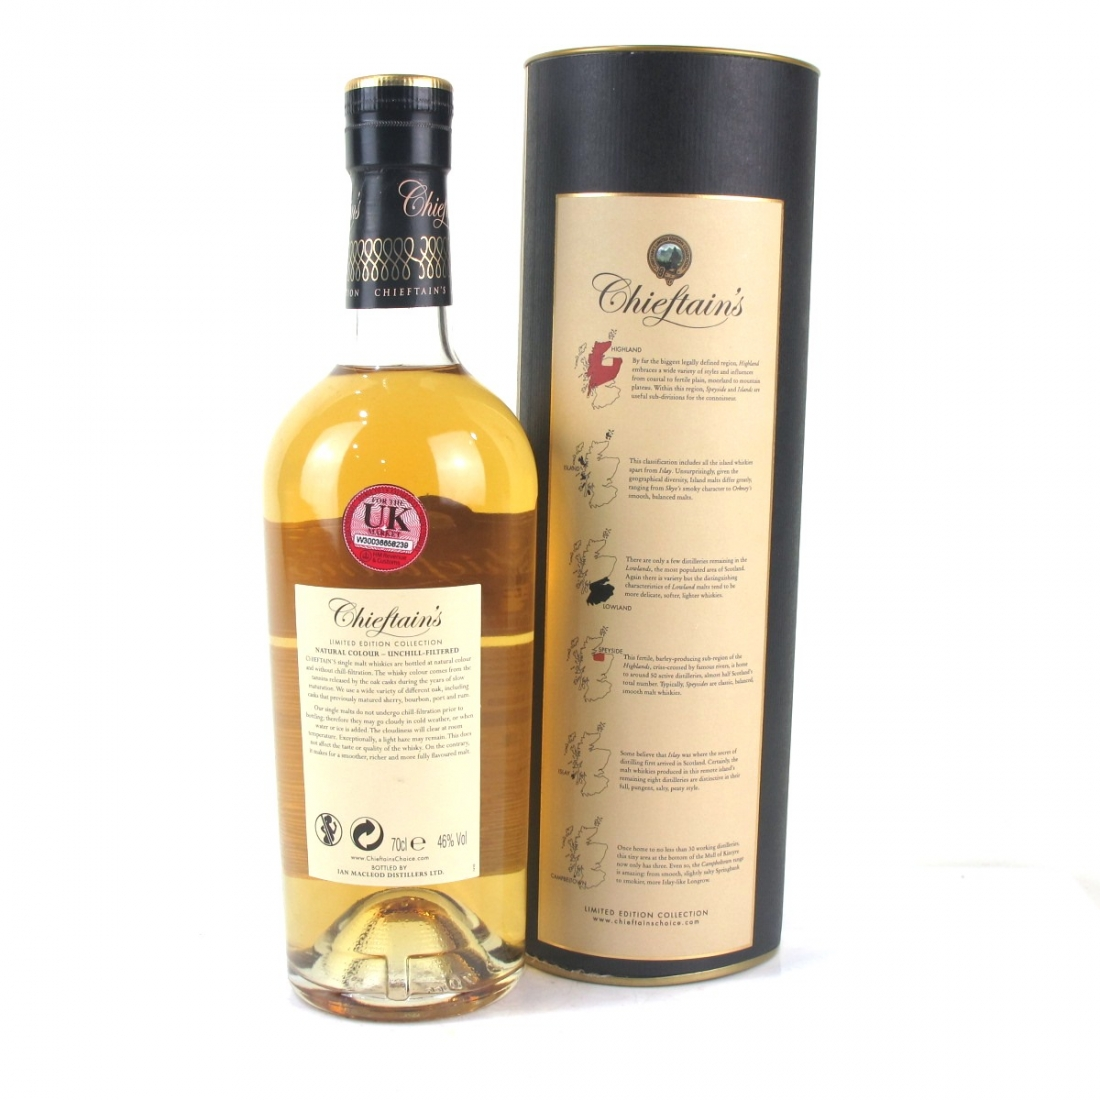 Bowmore 2002 Chieftain's 14 Year Old